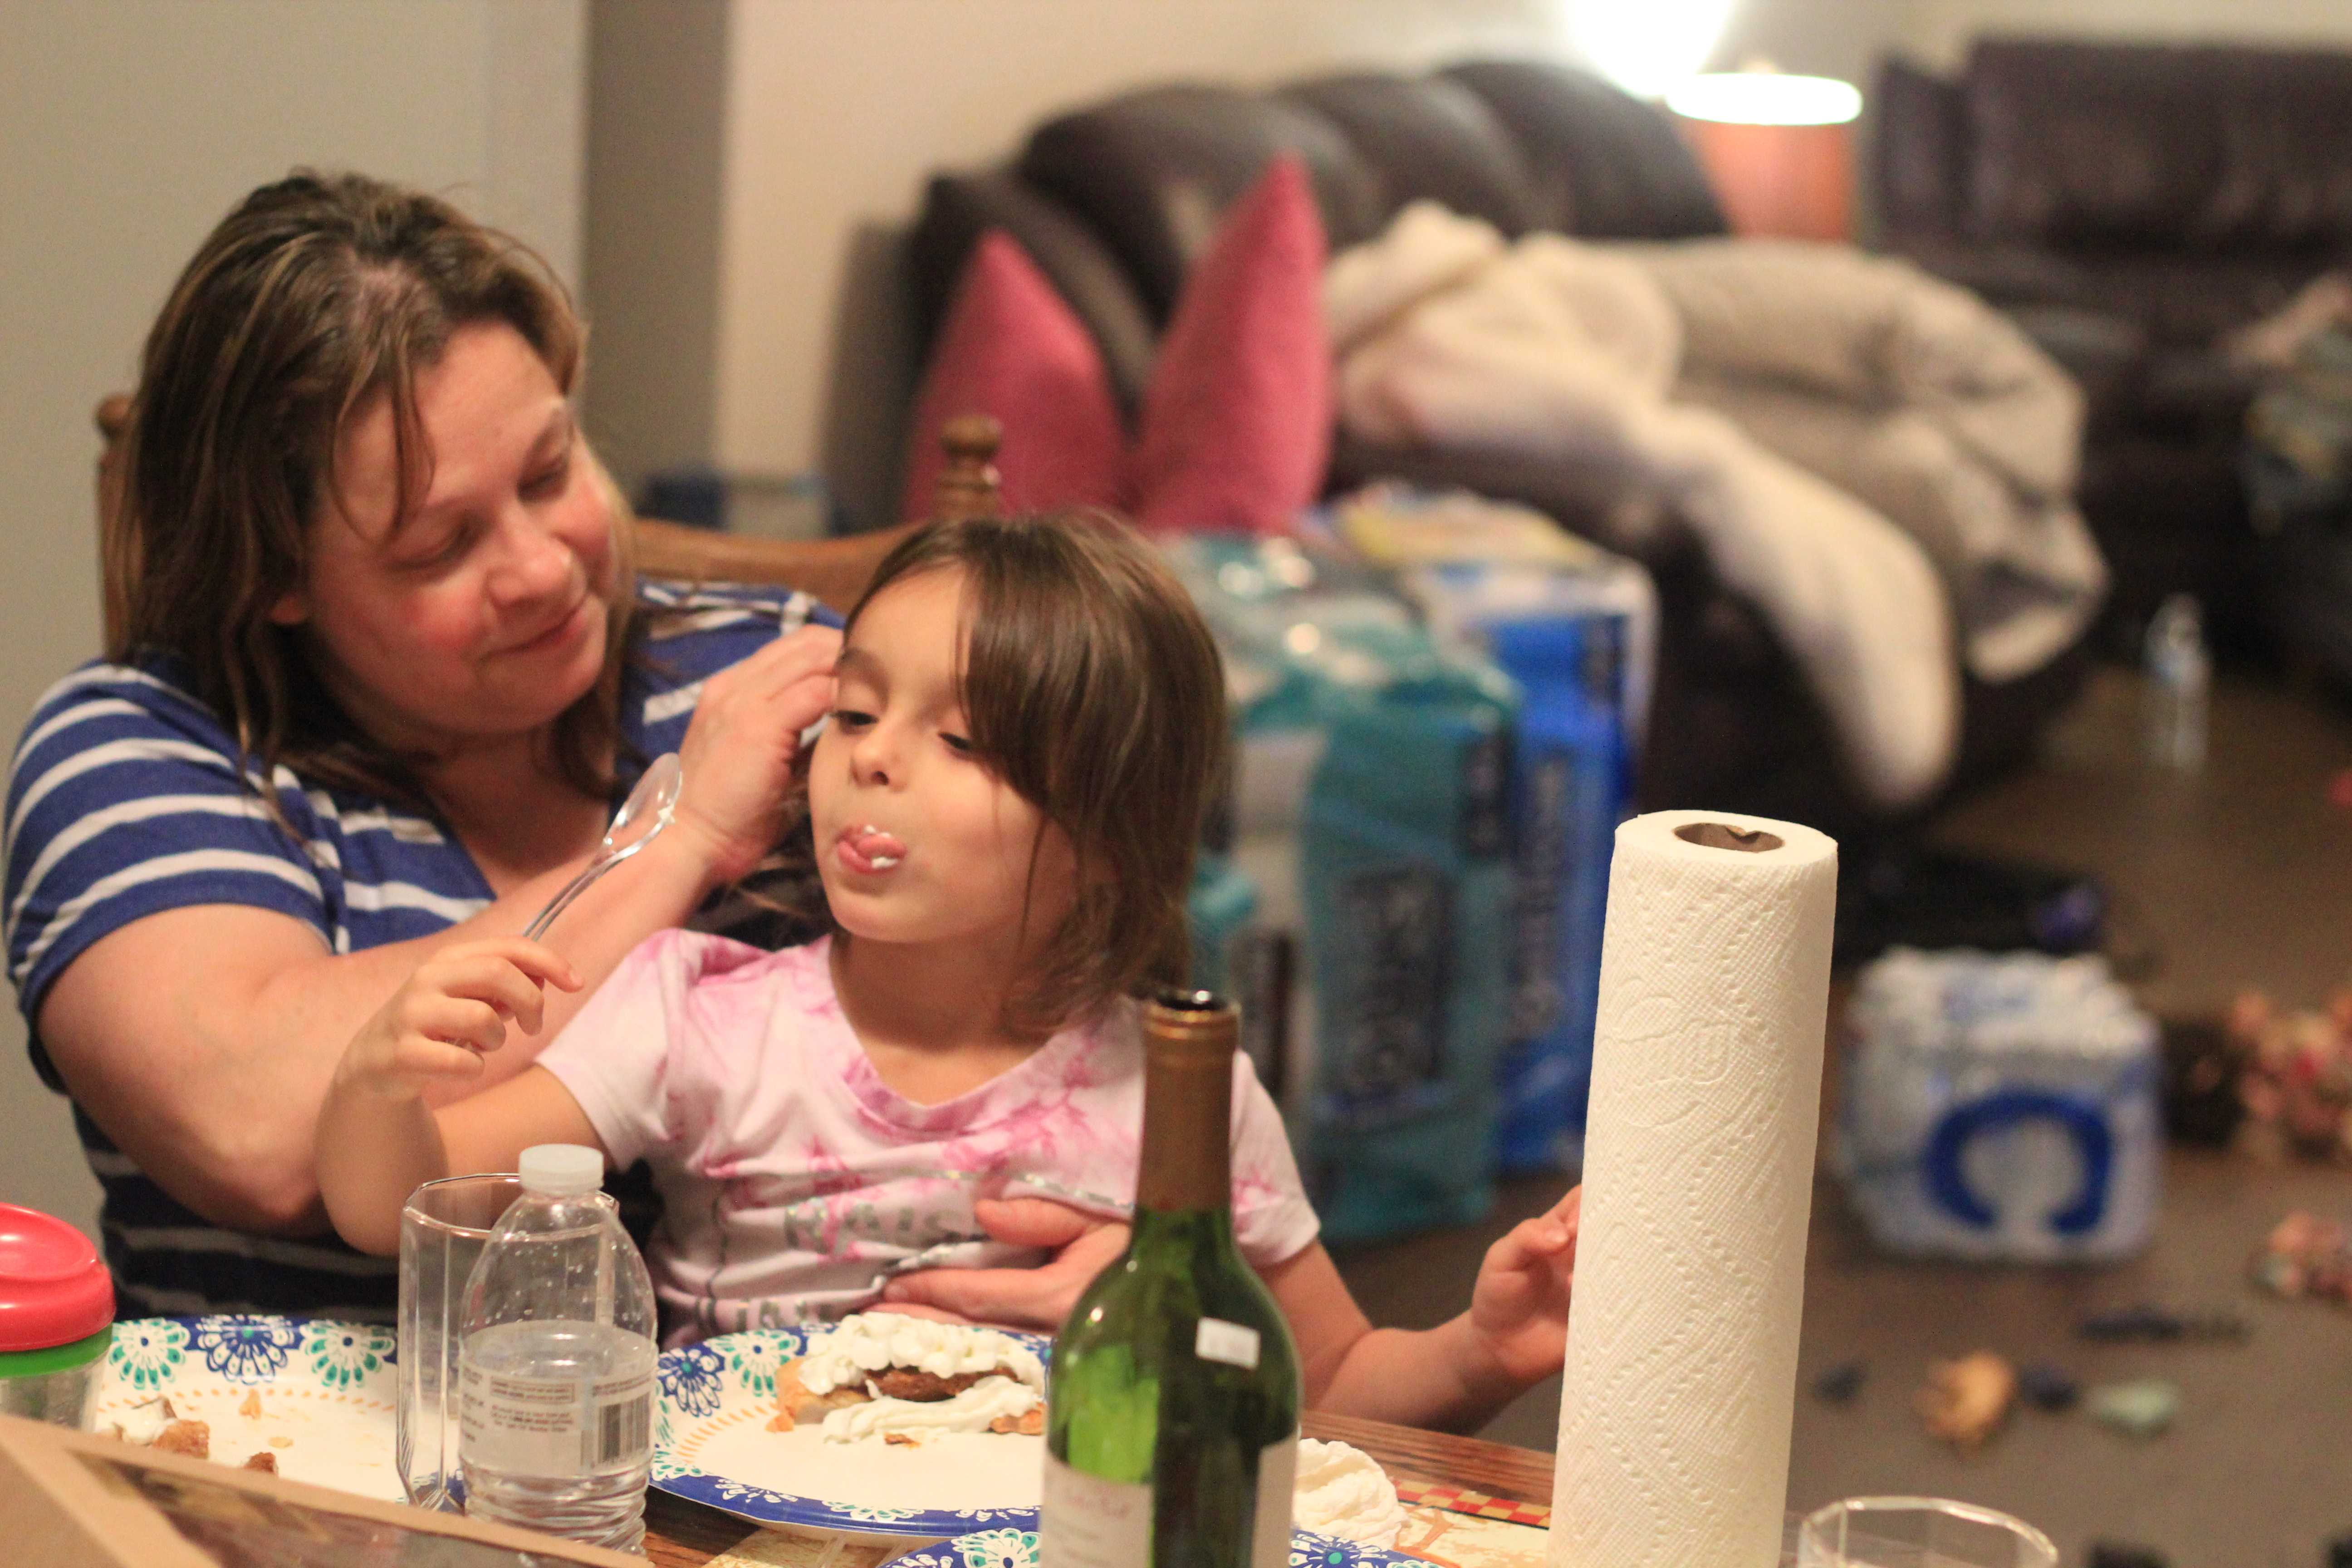 Elizabeth Marc, 42, Paradise wildfire survivor, feeds her daughter Isabelle, 4, spoonfuls of cottage cheese as the rest of her family eats dinner in their temporary rental home on Nov. 23 in Orland, Calif. The Marc family — Elizabeth, Isabelle, Paul, 50, and Francis, 17 — lost their home of two years when the most deadly fire in state history broke out on Nov. 8. (Lorenzo Morotti/Golden Gate Xpress)